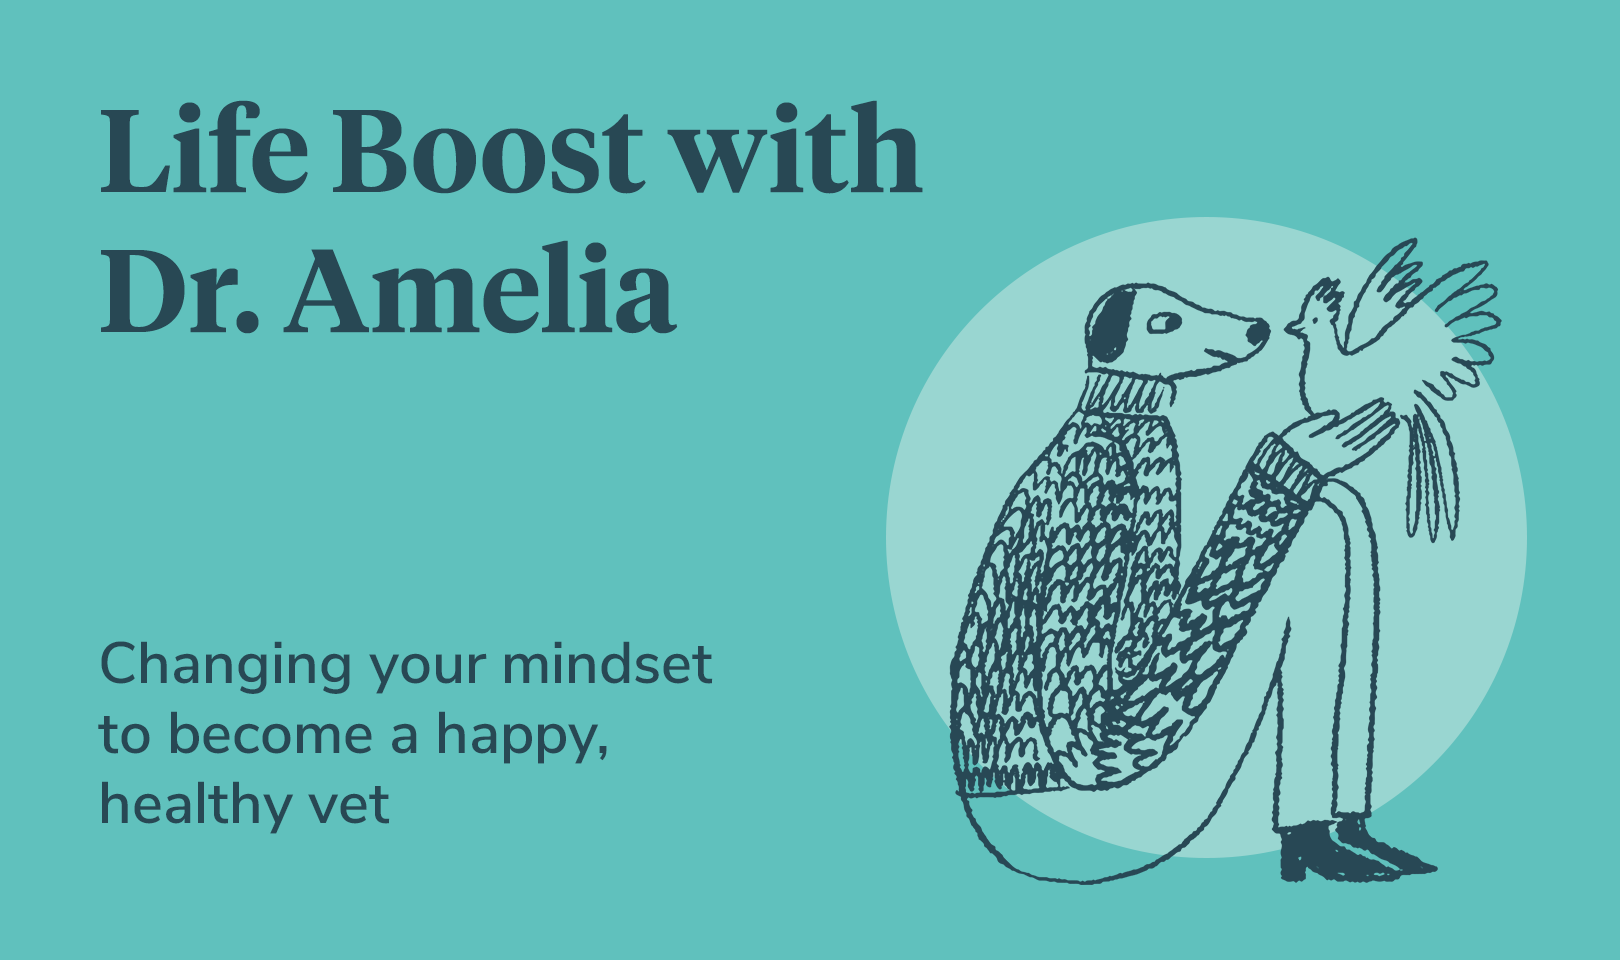 Changing your mindset to become a happy, healthy vet